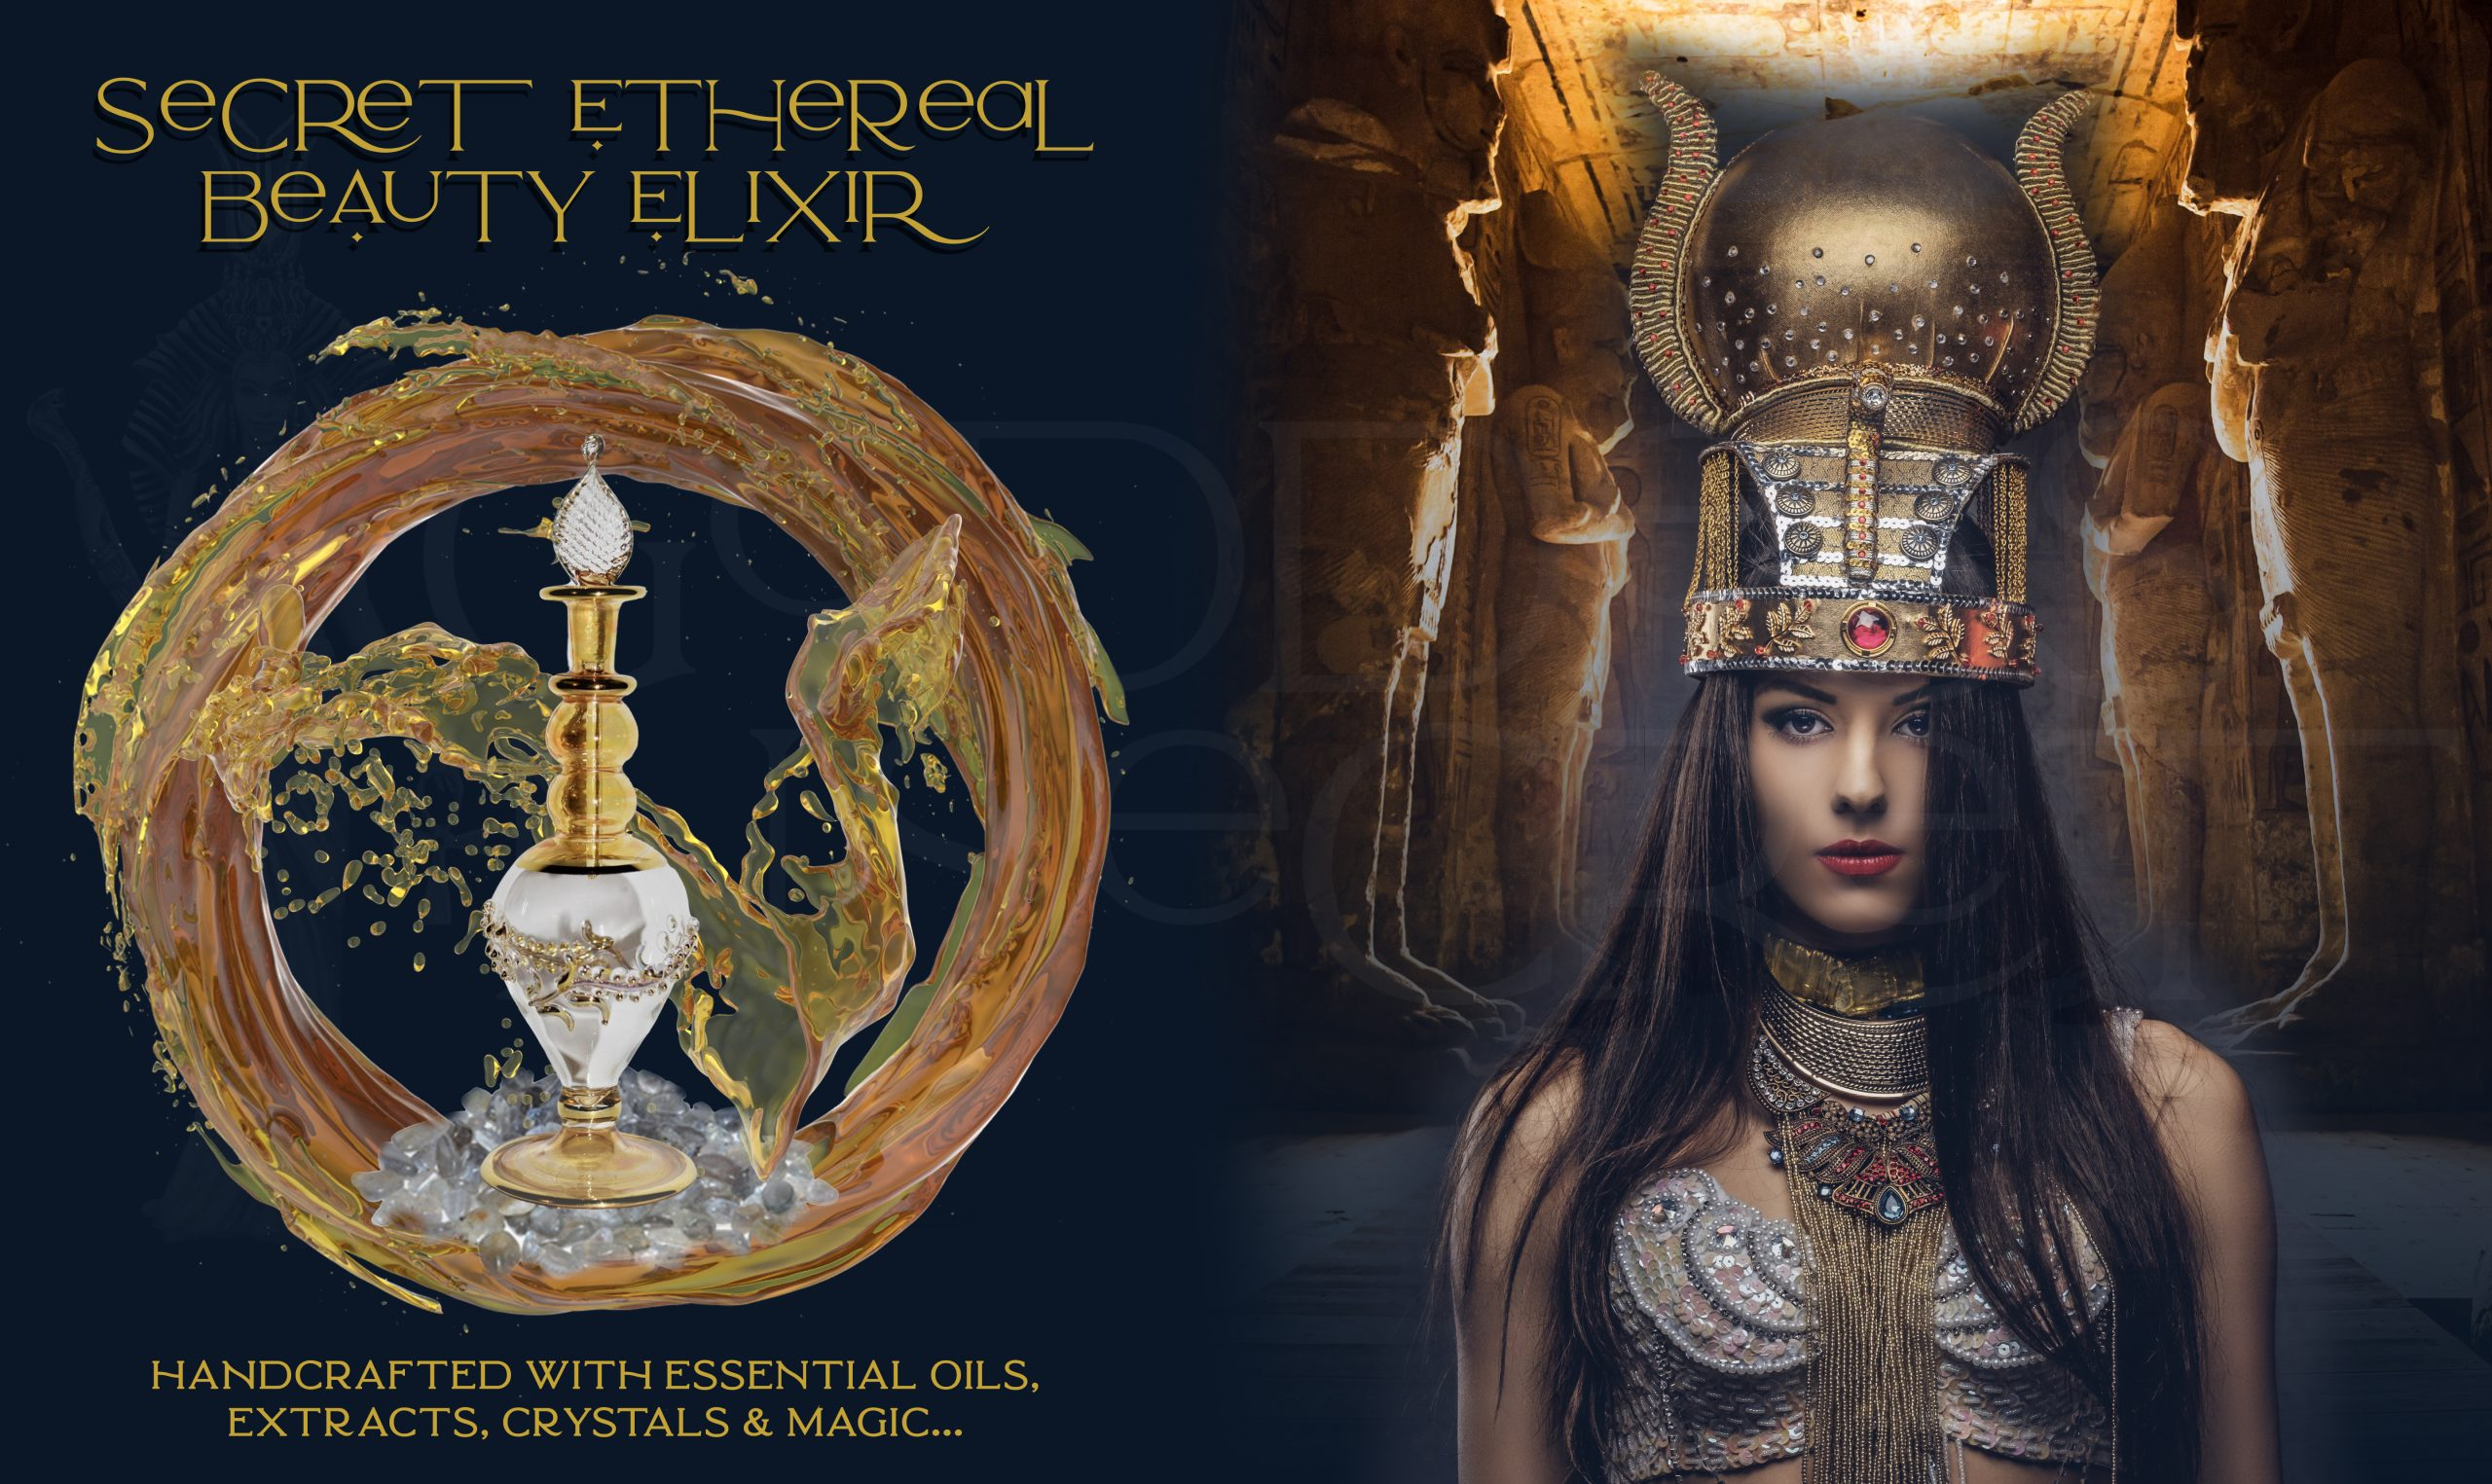 Goddess In Secret Launches Anti-Aging Secret Ethereal Beauty Elixir For Women